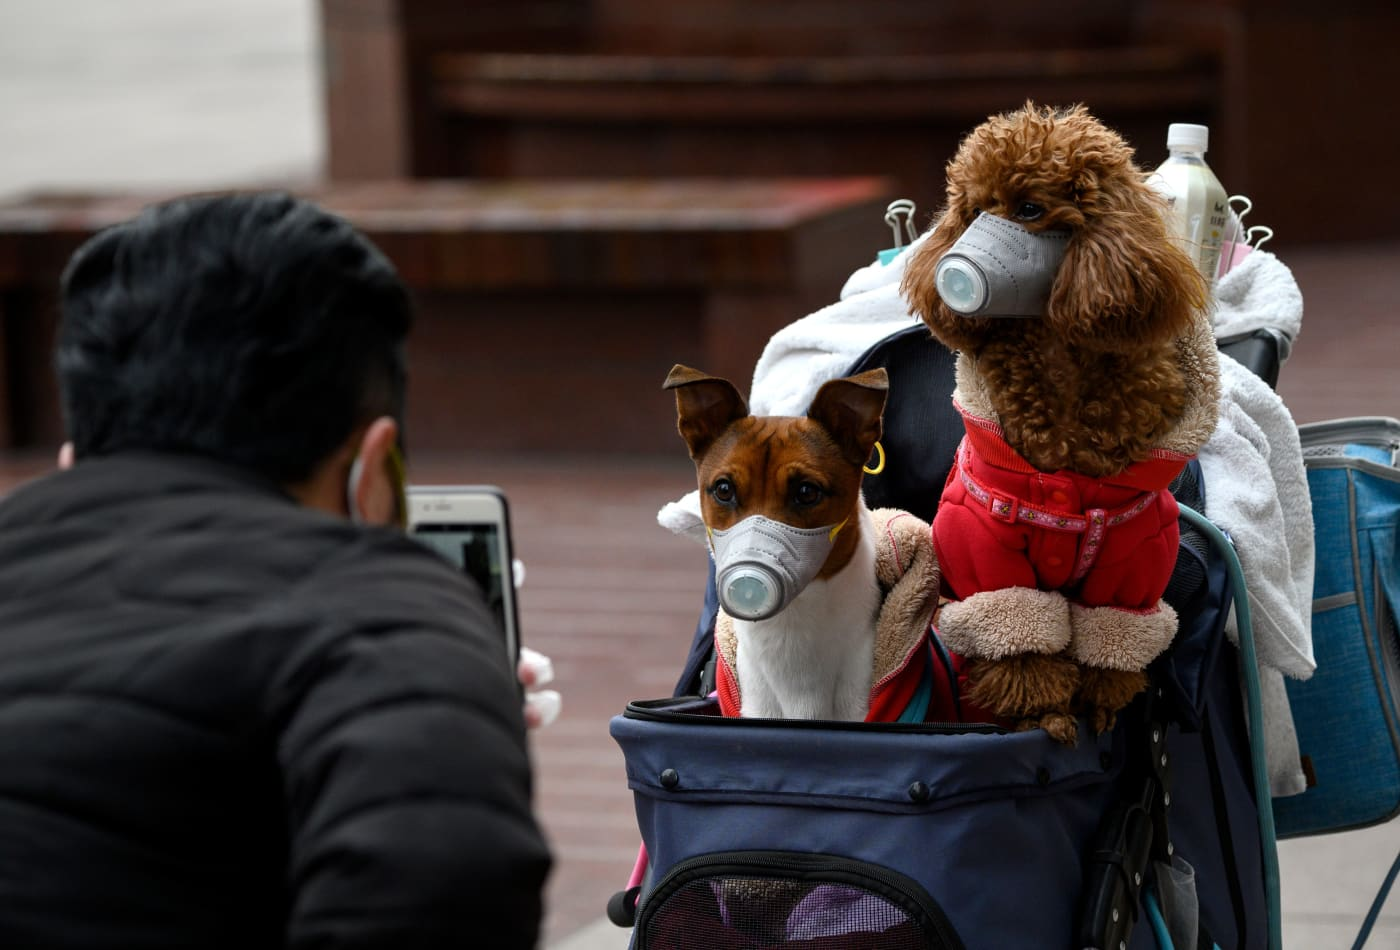 A dog in Hong Kong tests positive for the coronavirus, WHO officials confirm